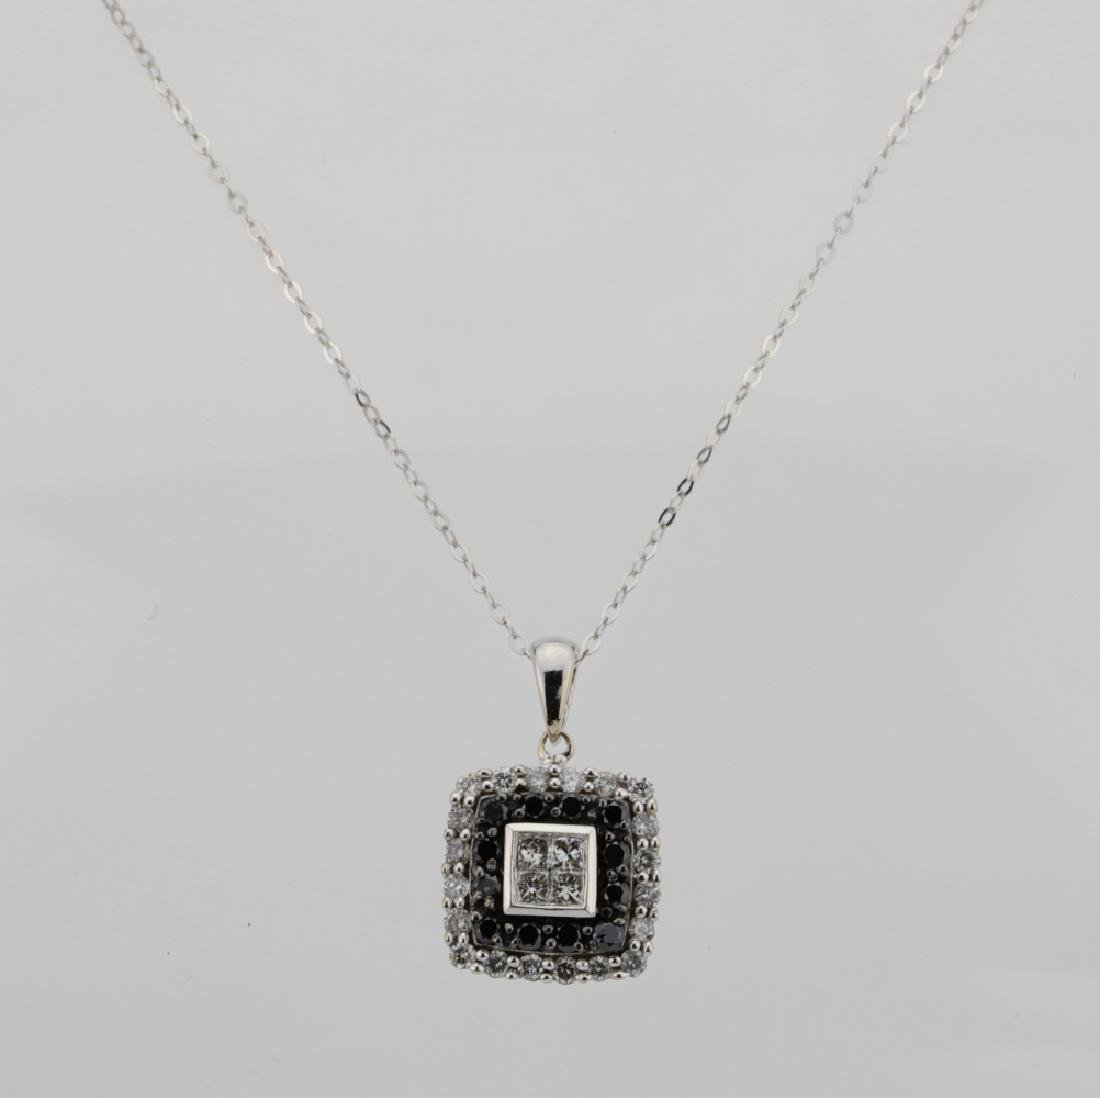 10K .85ctw Black/White Diamond Pendant W/14K Chain - 2